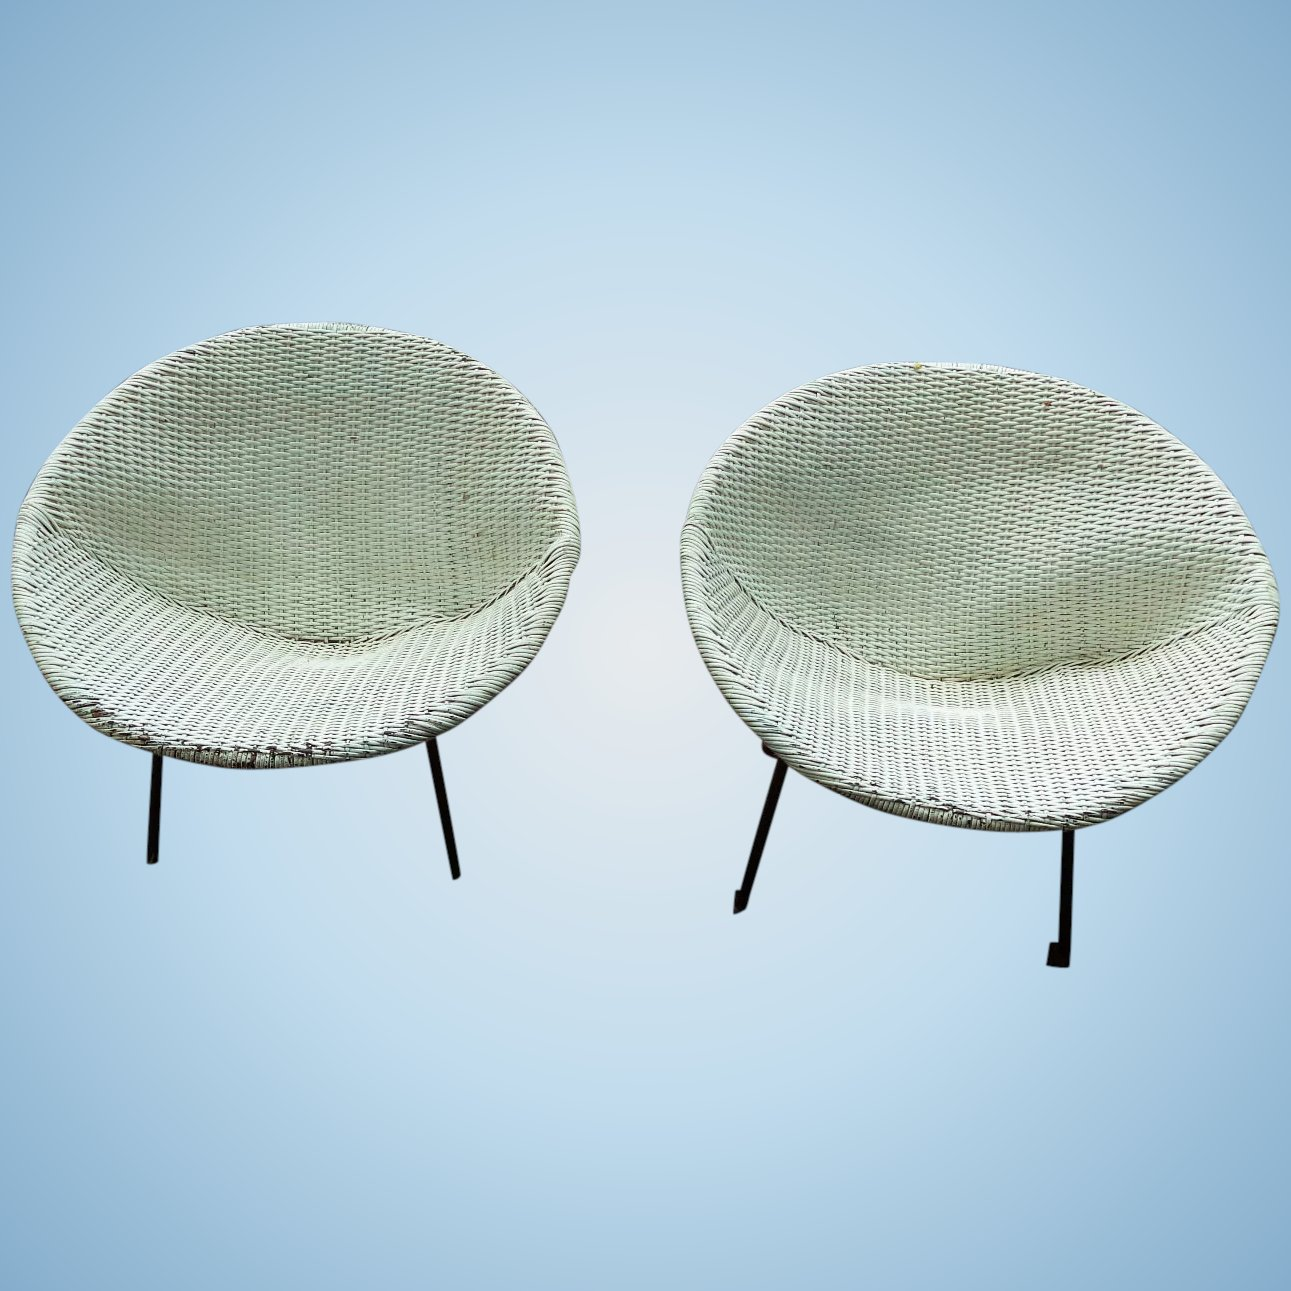 Ginchiest Danish Mid Modern C 1950 S Patio Sphere Chairs